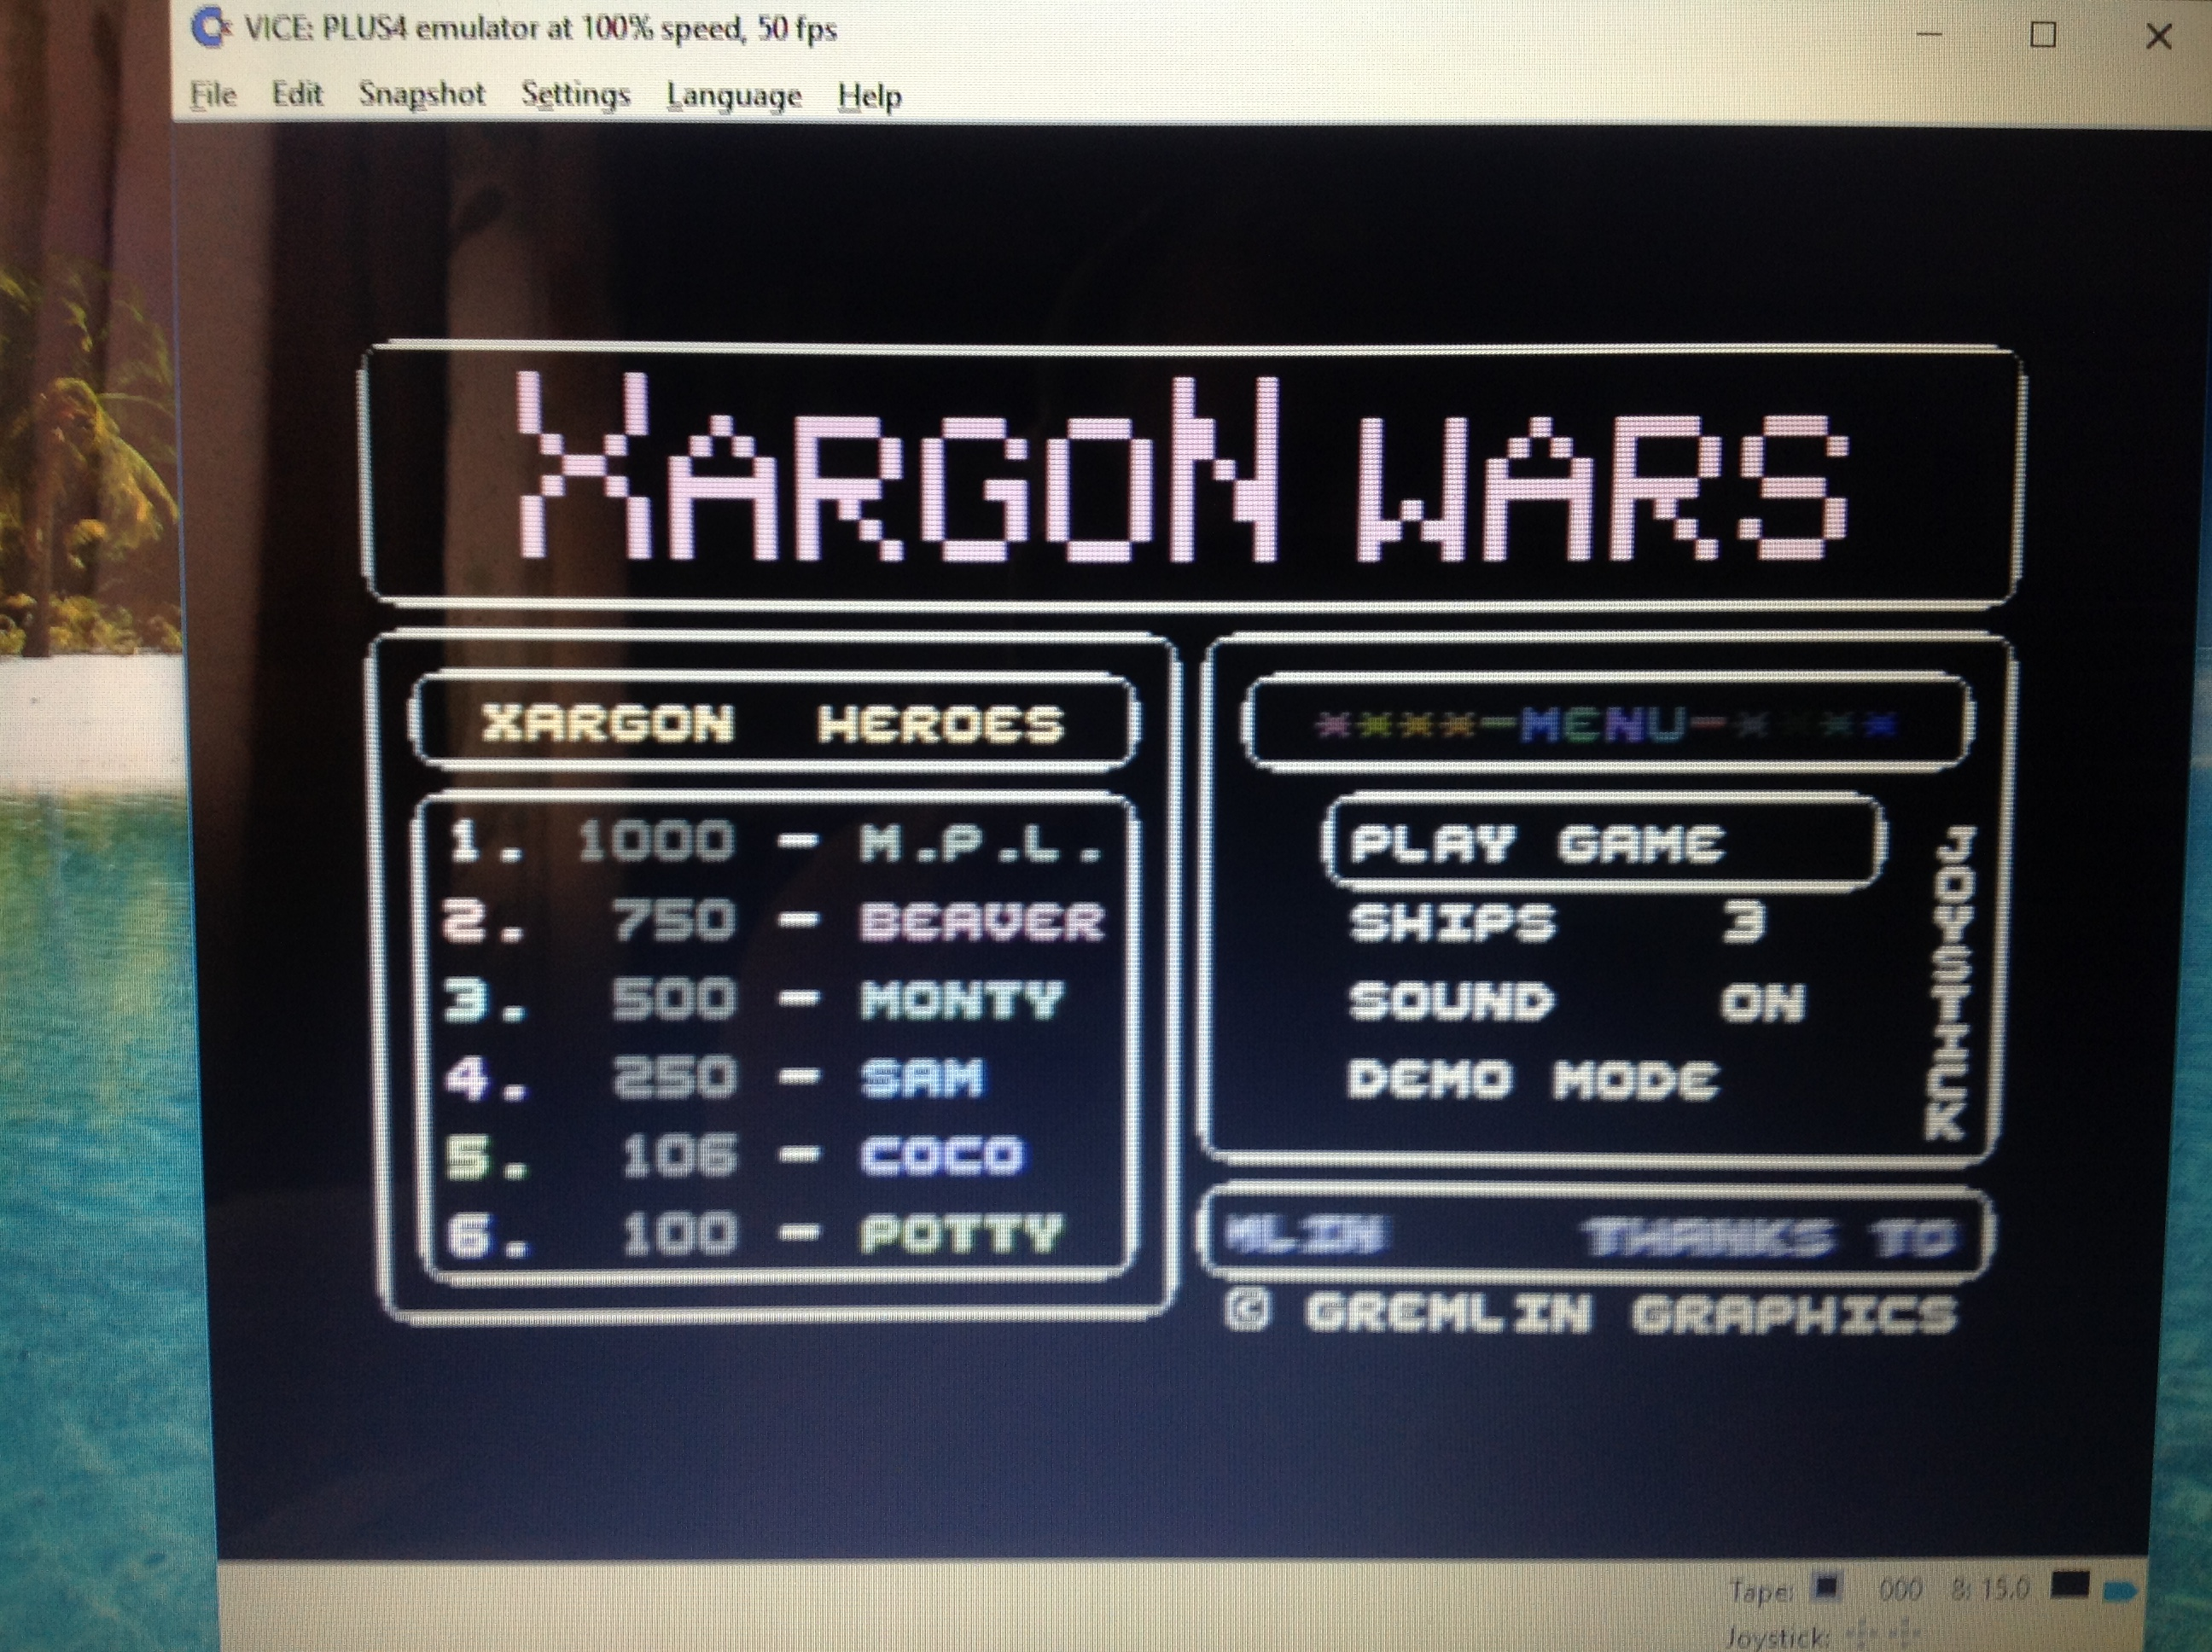 CoCoForest: Xargon Wars (Commodore 16/Plus4 Emulated) 106 points on 2017-08-14 03:17:49